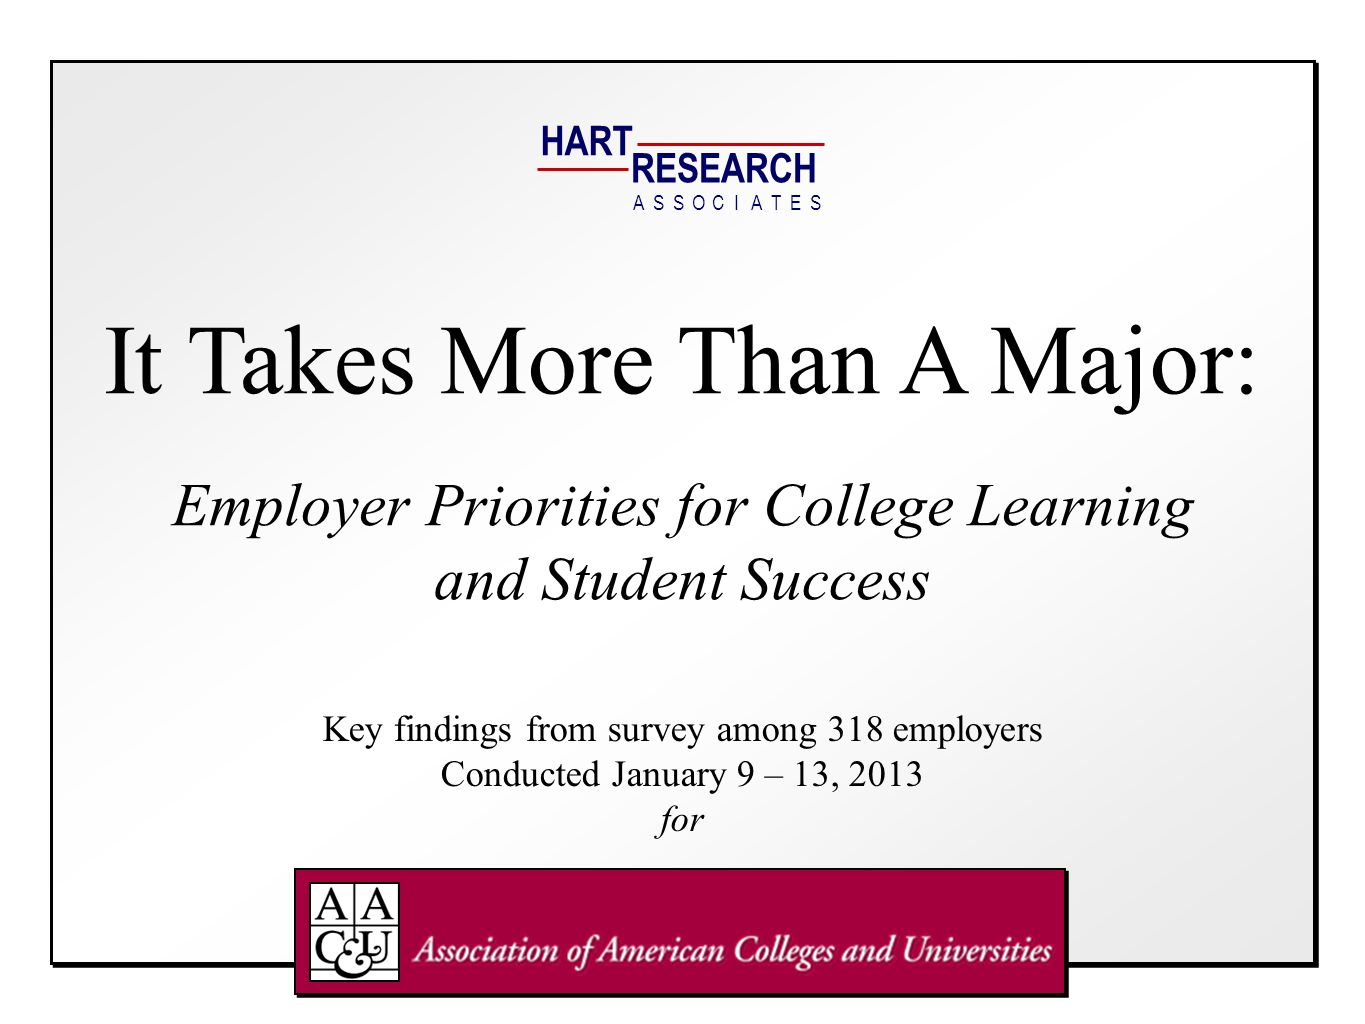 HART RESEARCH ASSOTESCIA It Takes More Than A Major: Employer Priorities for College Learning and Student Success Key findings from survey among 318 e